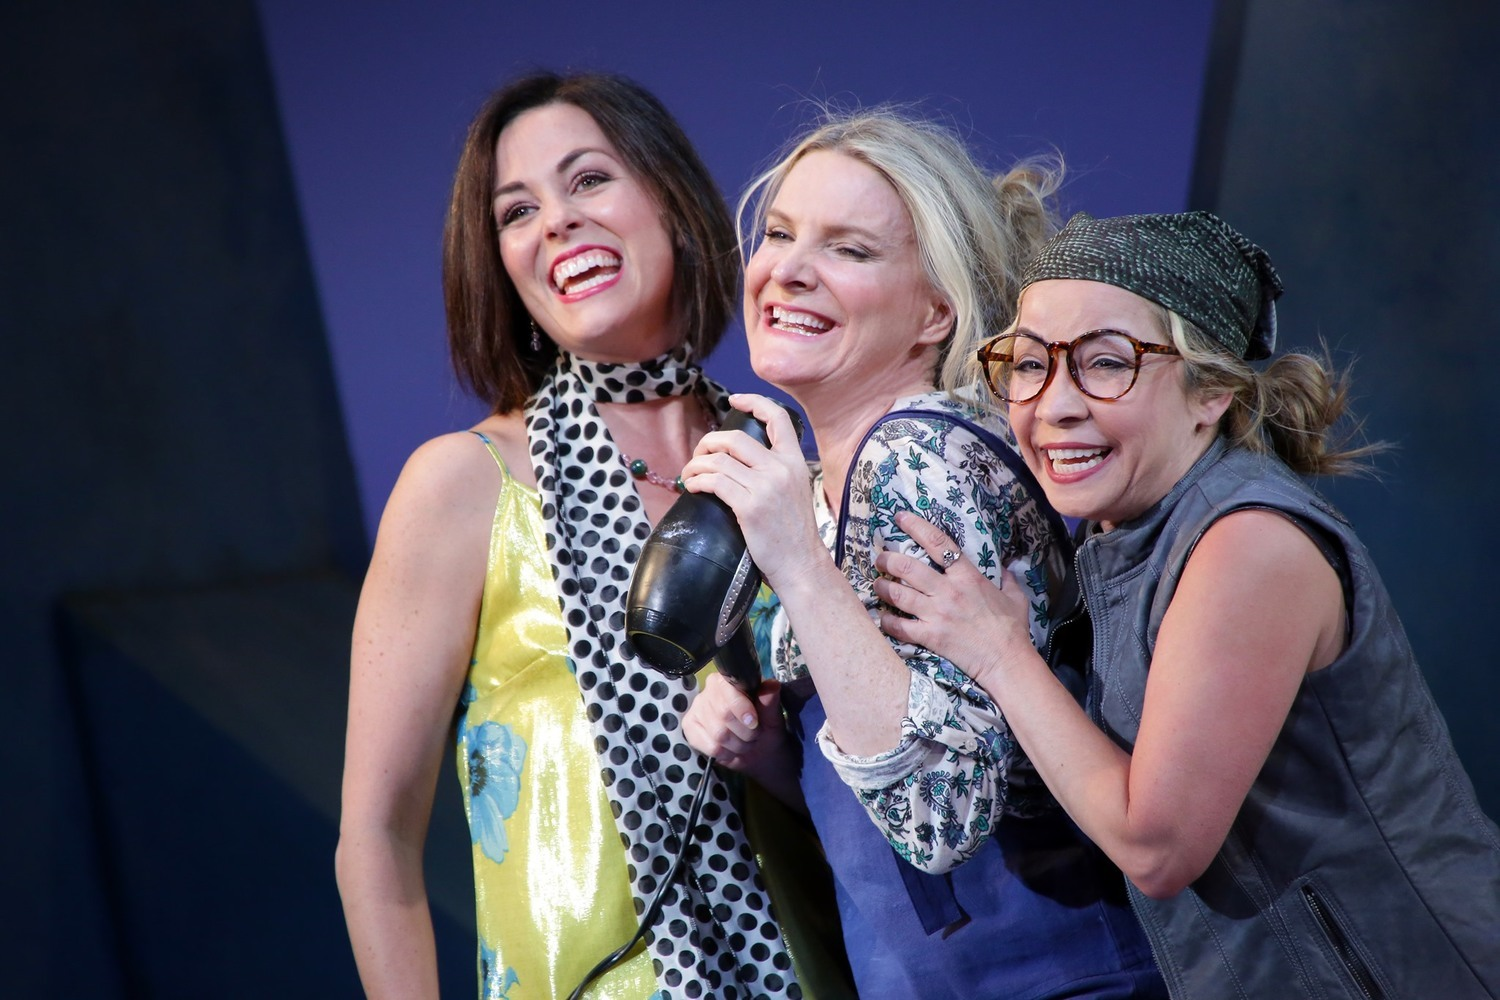 Review Roundup: MAMMA MIA! at Connecticut Repertory Theatre; What Did The Critics Think?